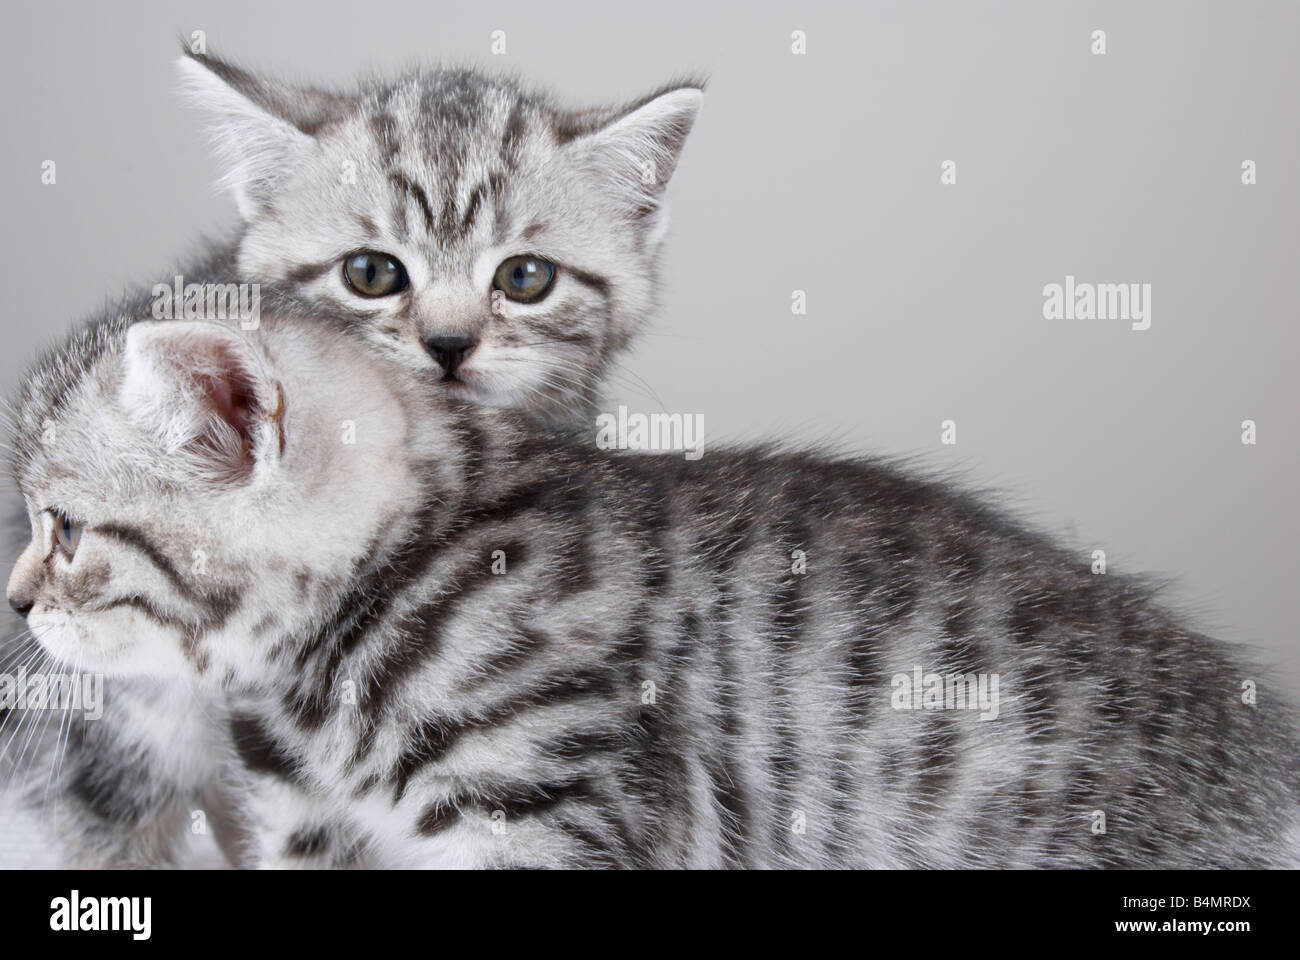 kitten crouched behind one of his siblings - Stock Image